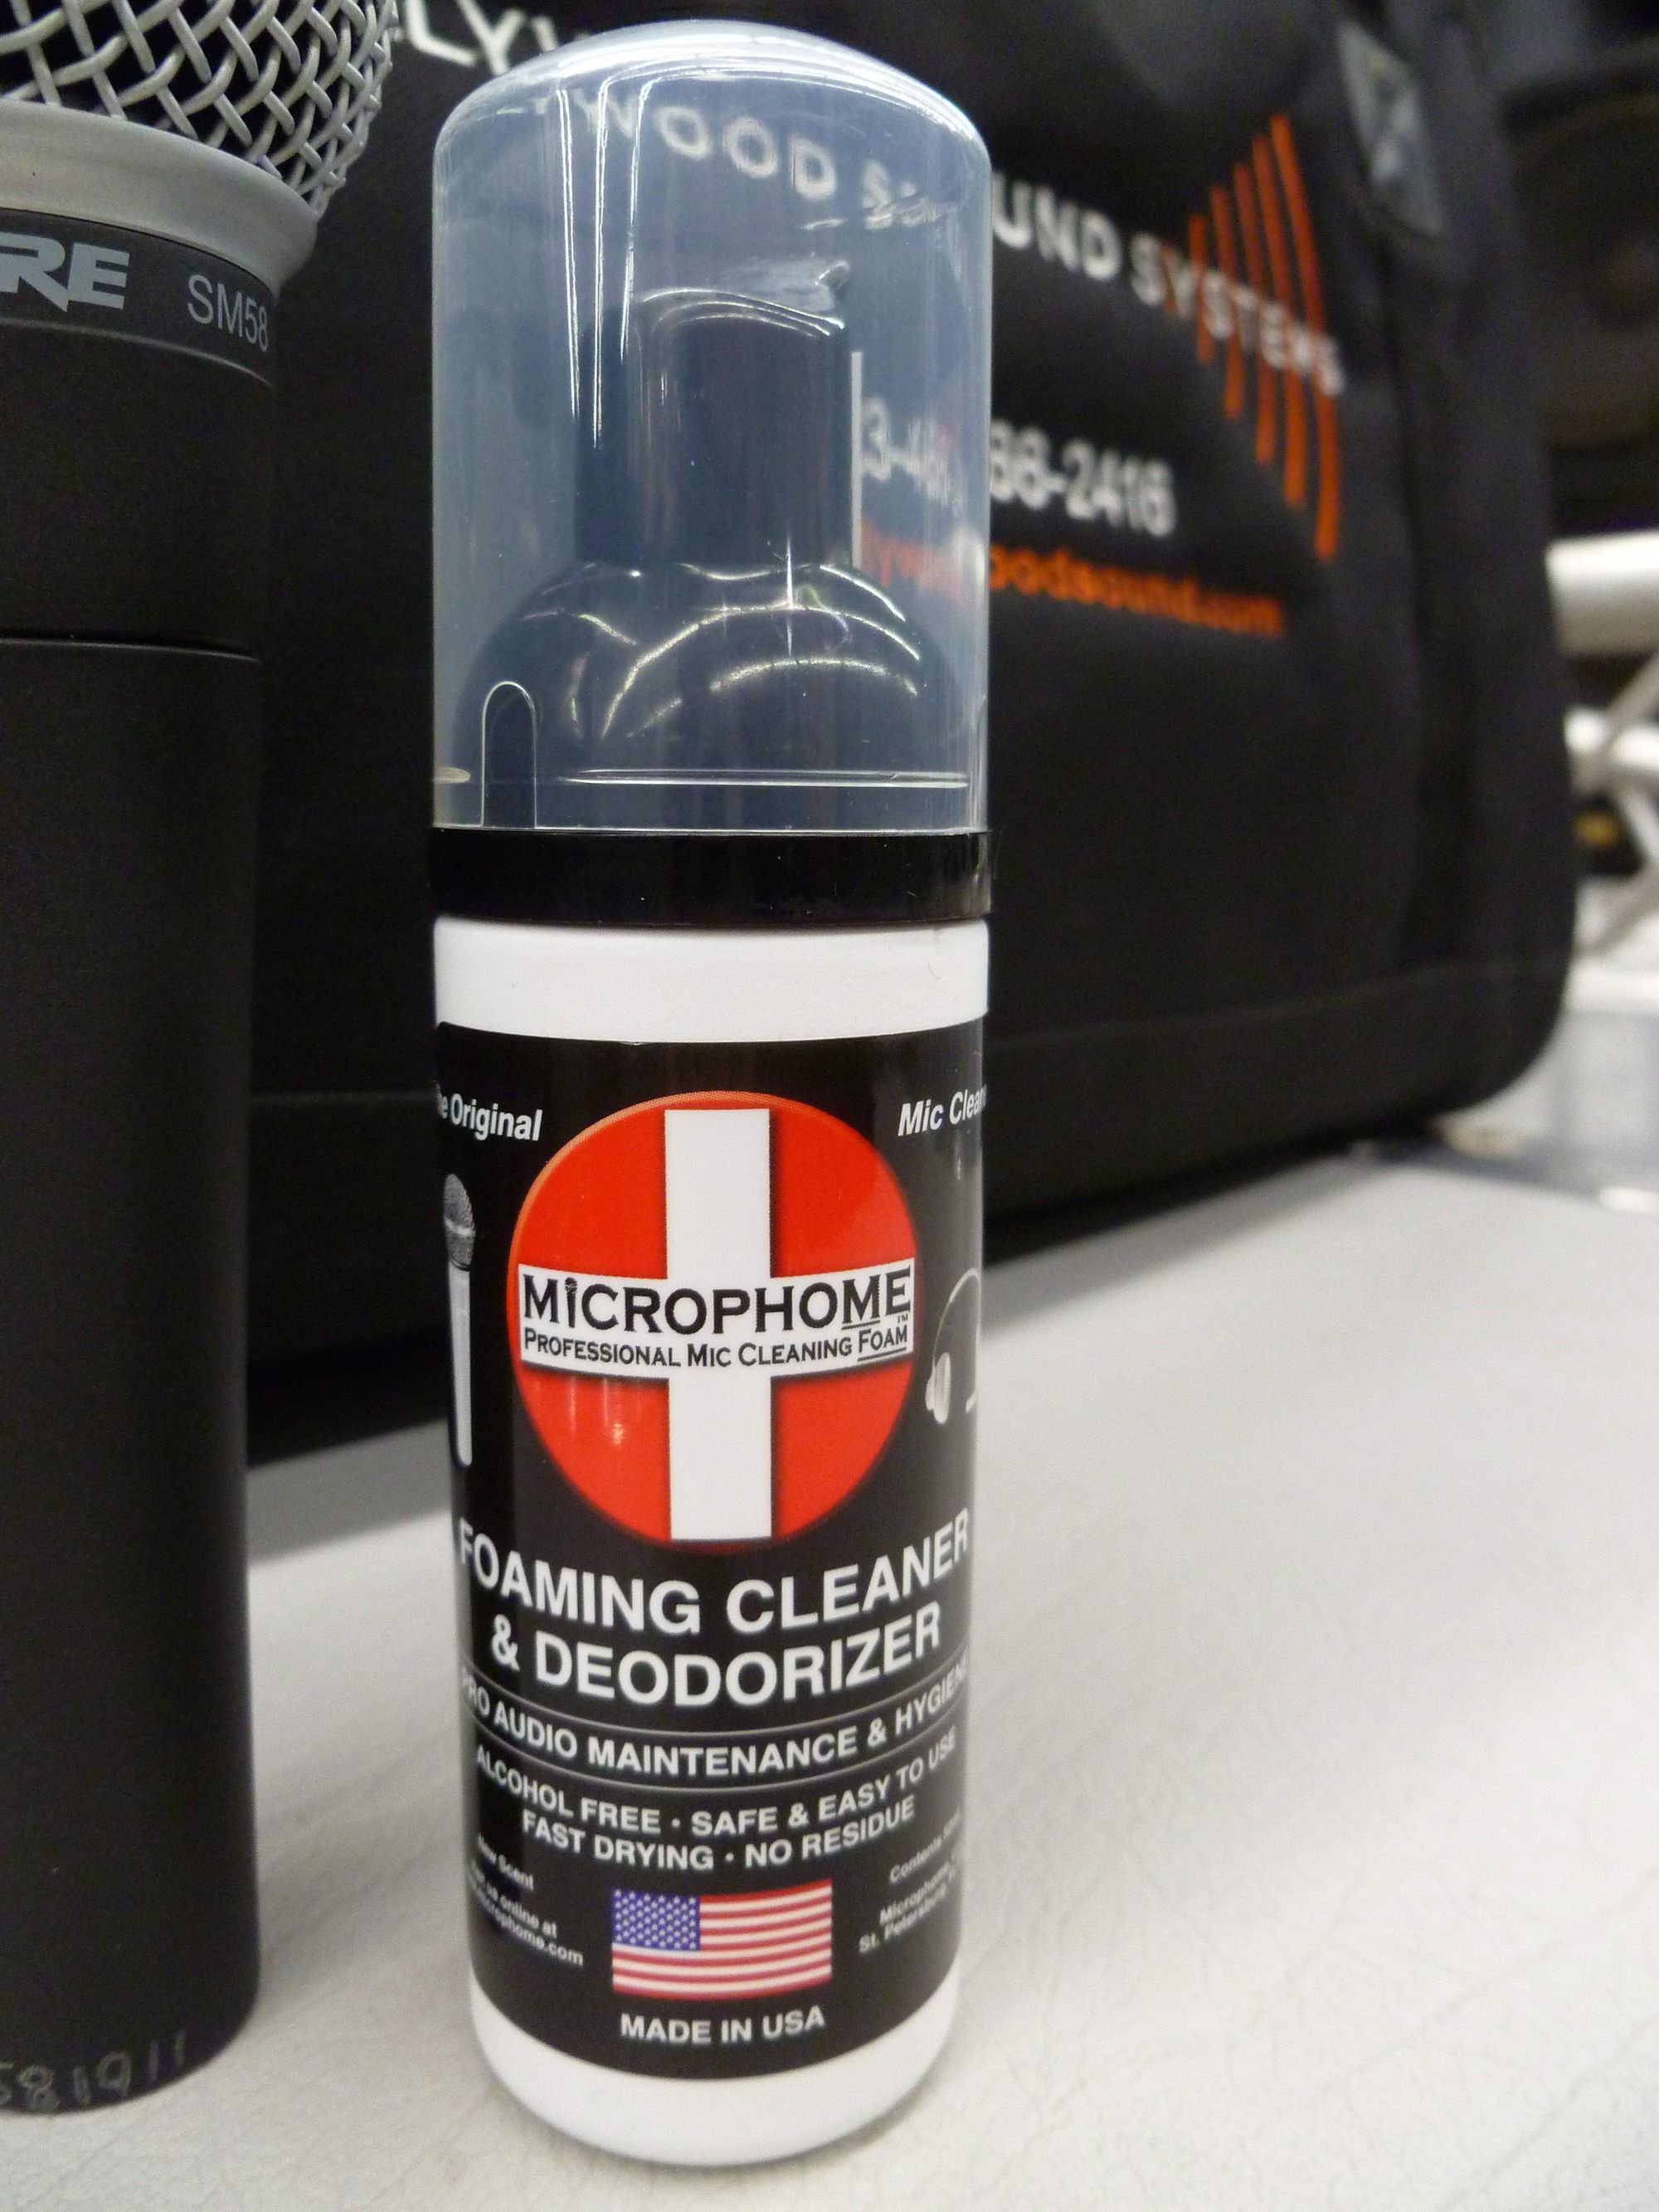 Microphome is available at Hollywood Sound Systems